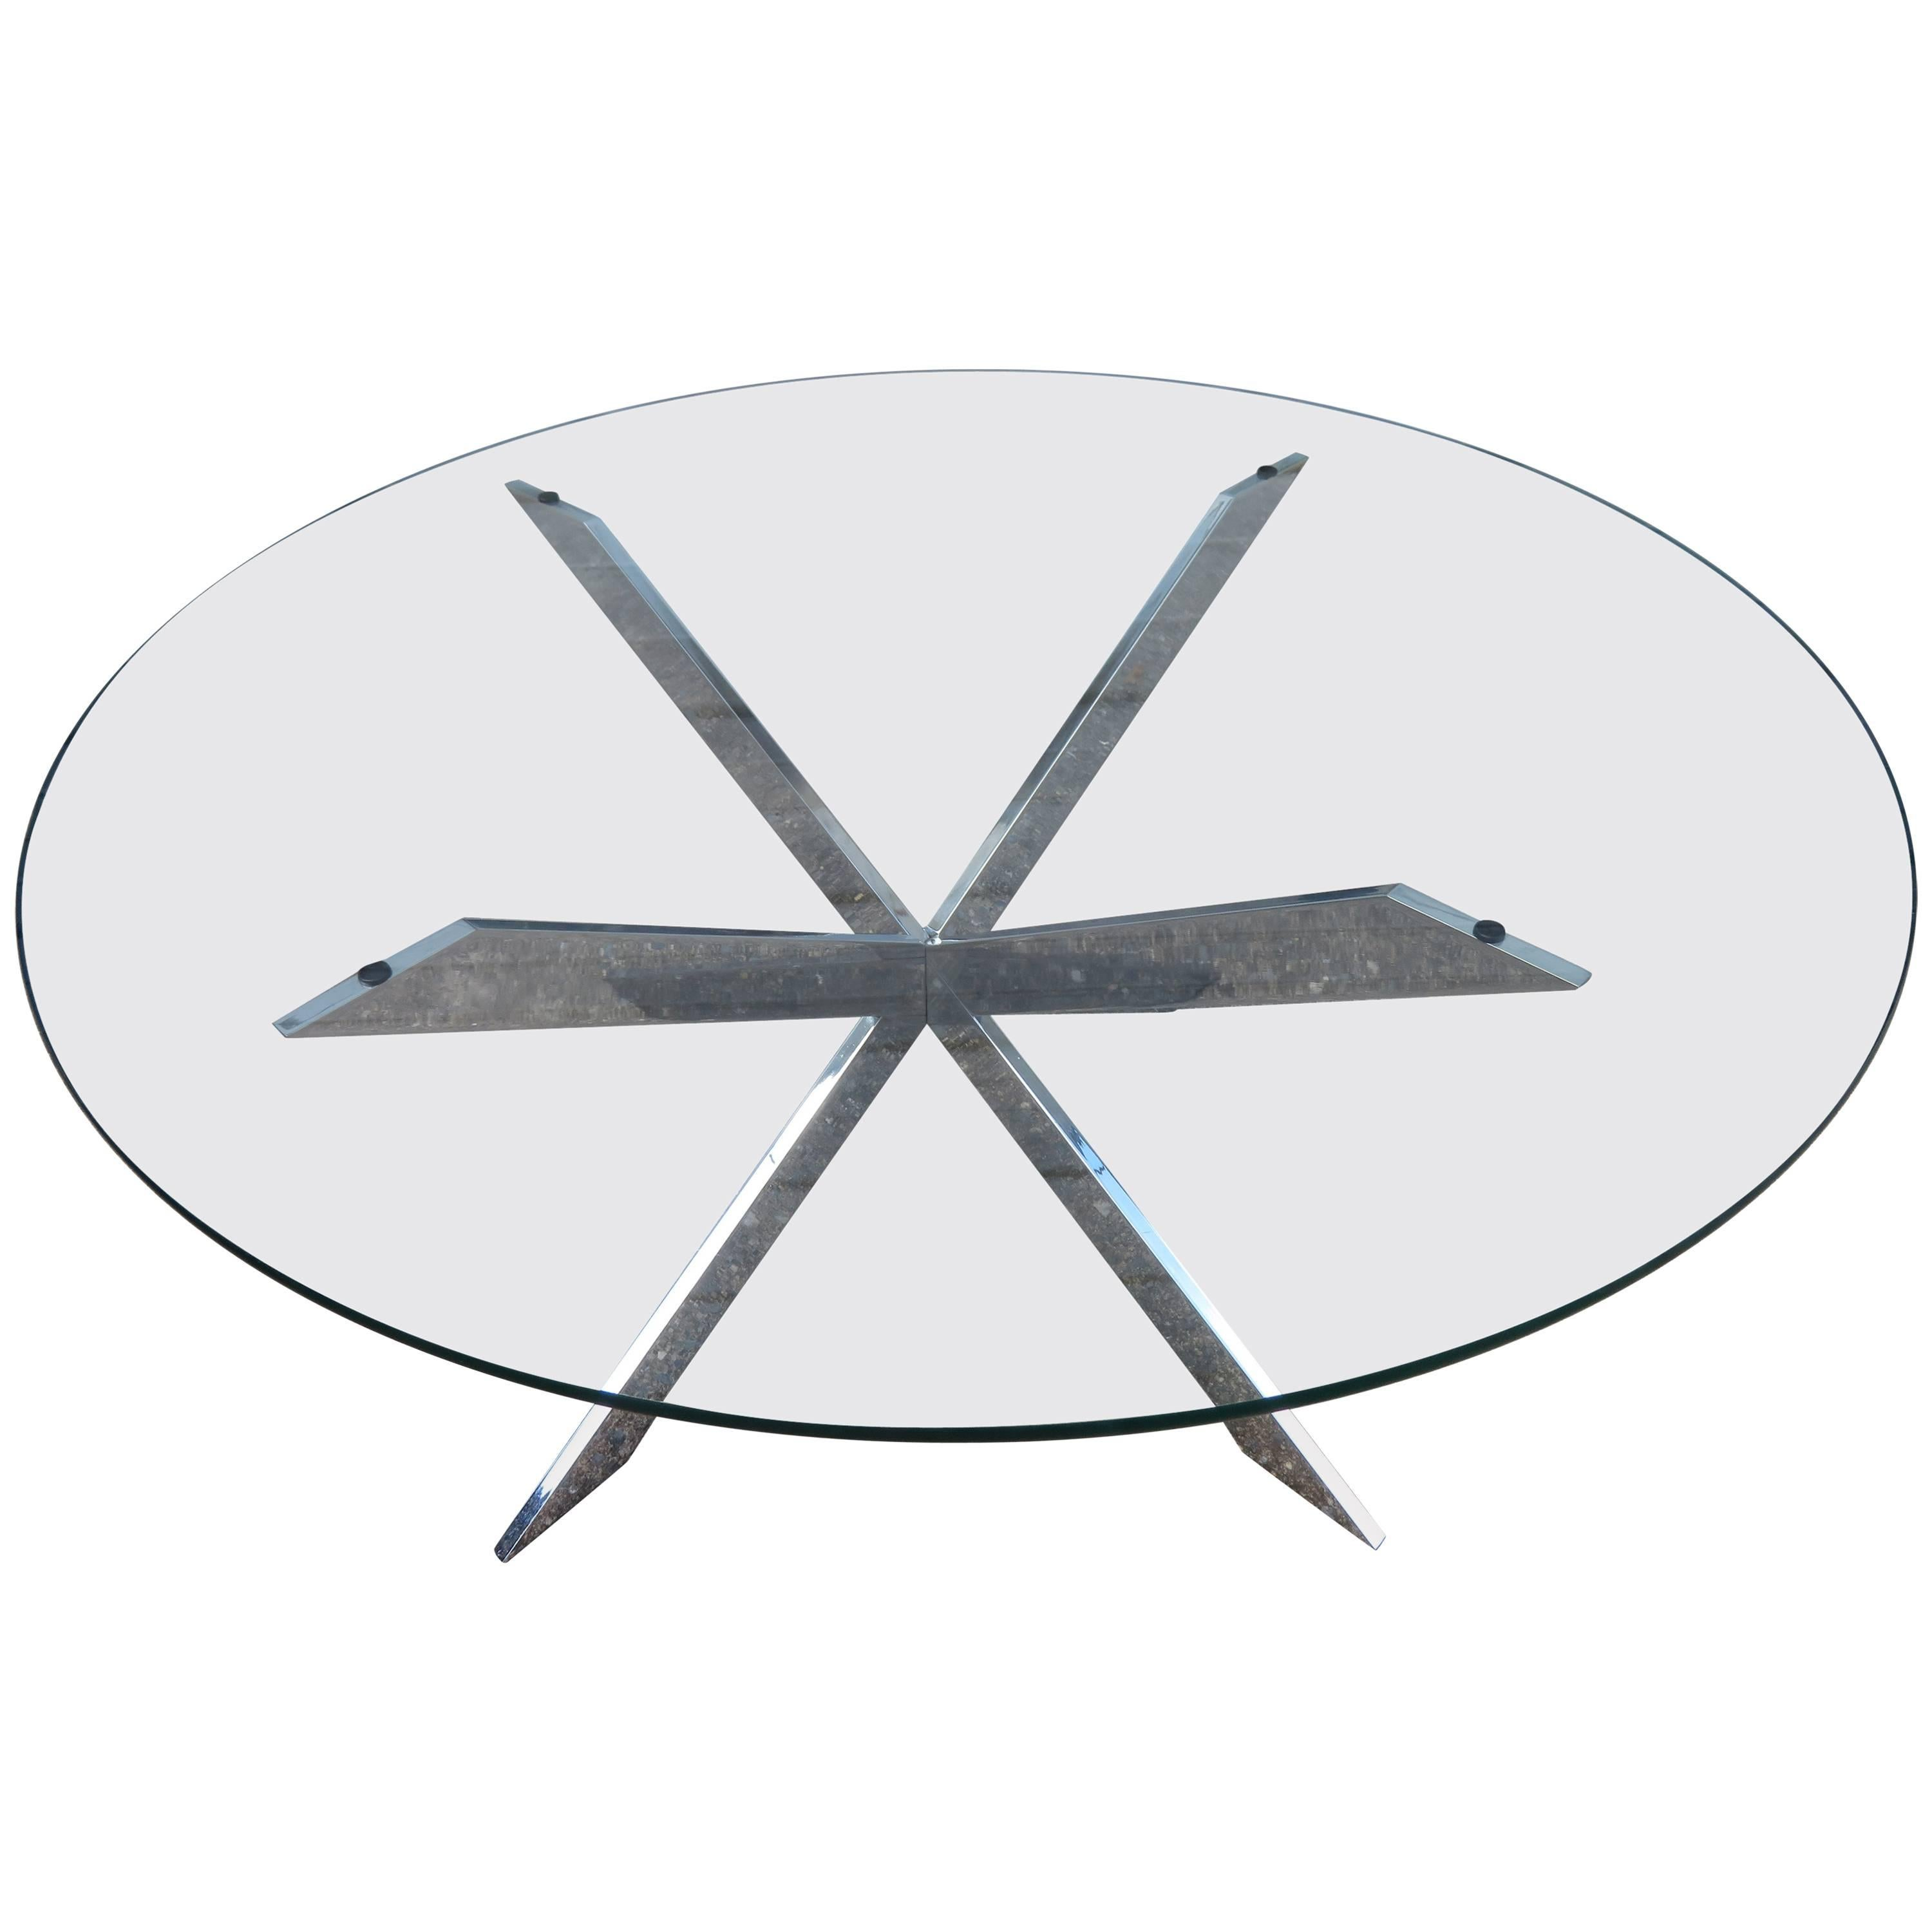 Gorgeous Leon Rosen for Pace Collection Double X-Base Chrome Coffee Table